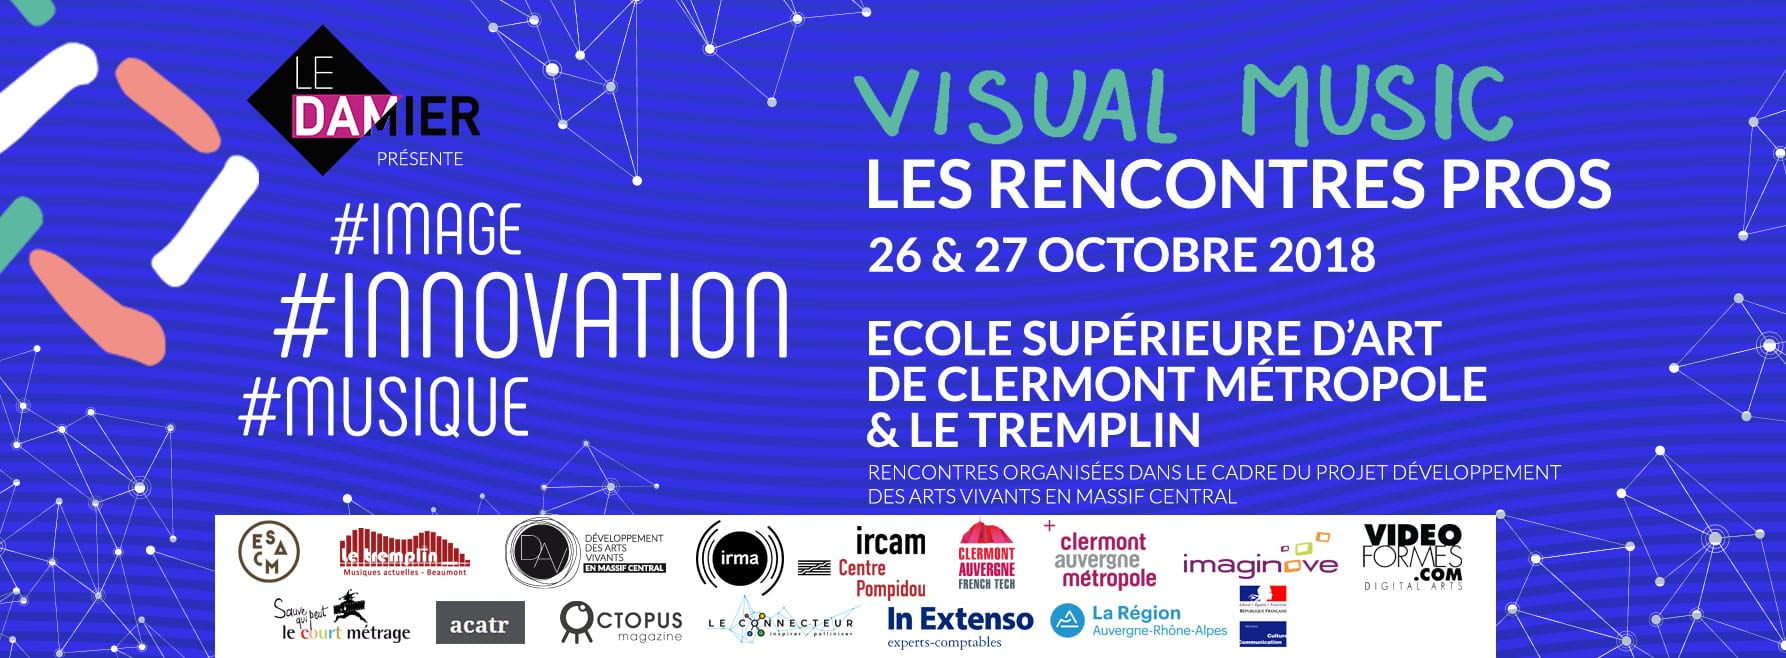 VISUAL MUSIC Rencontres Pros